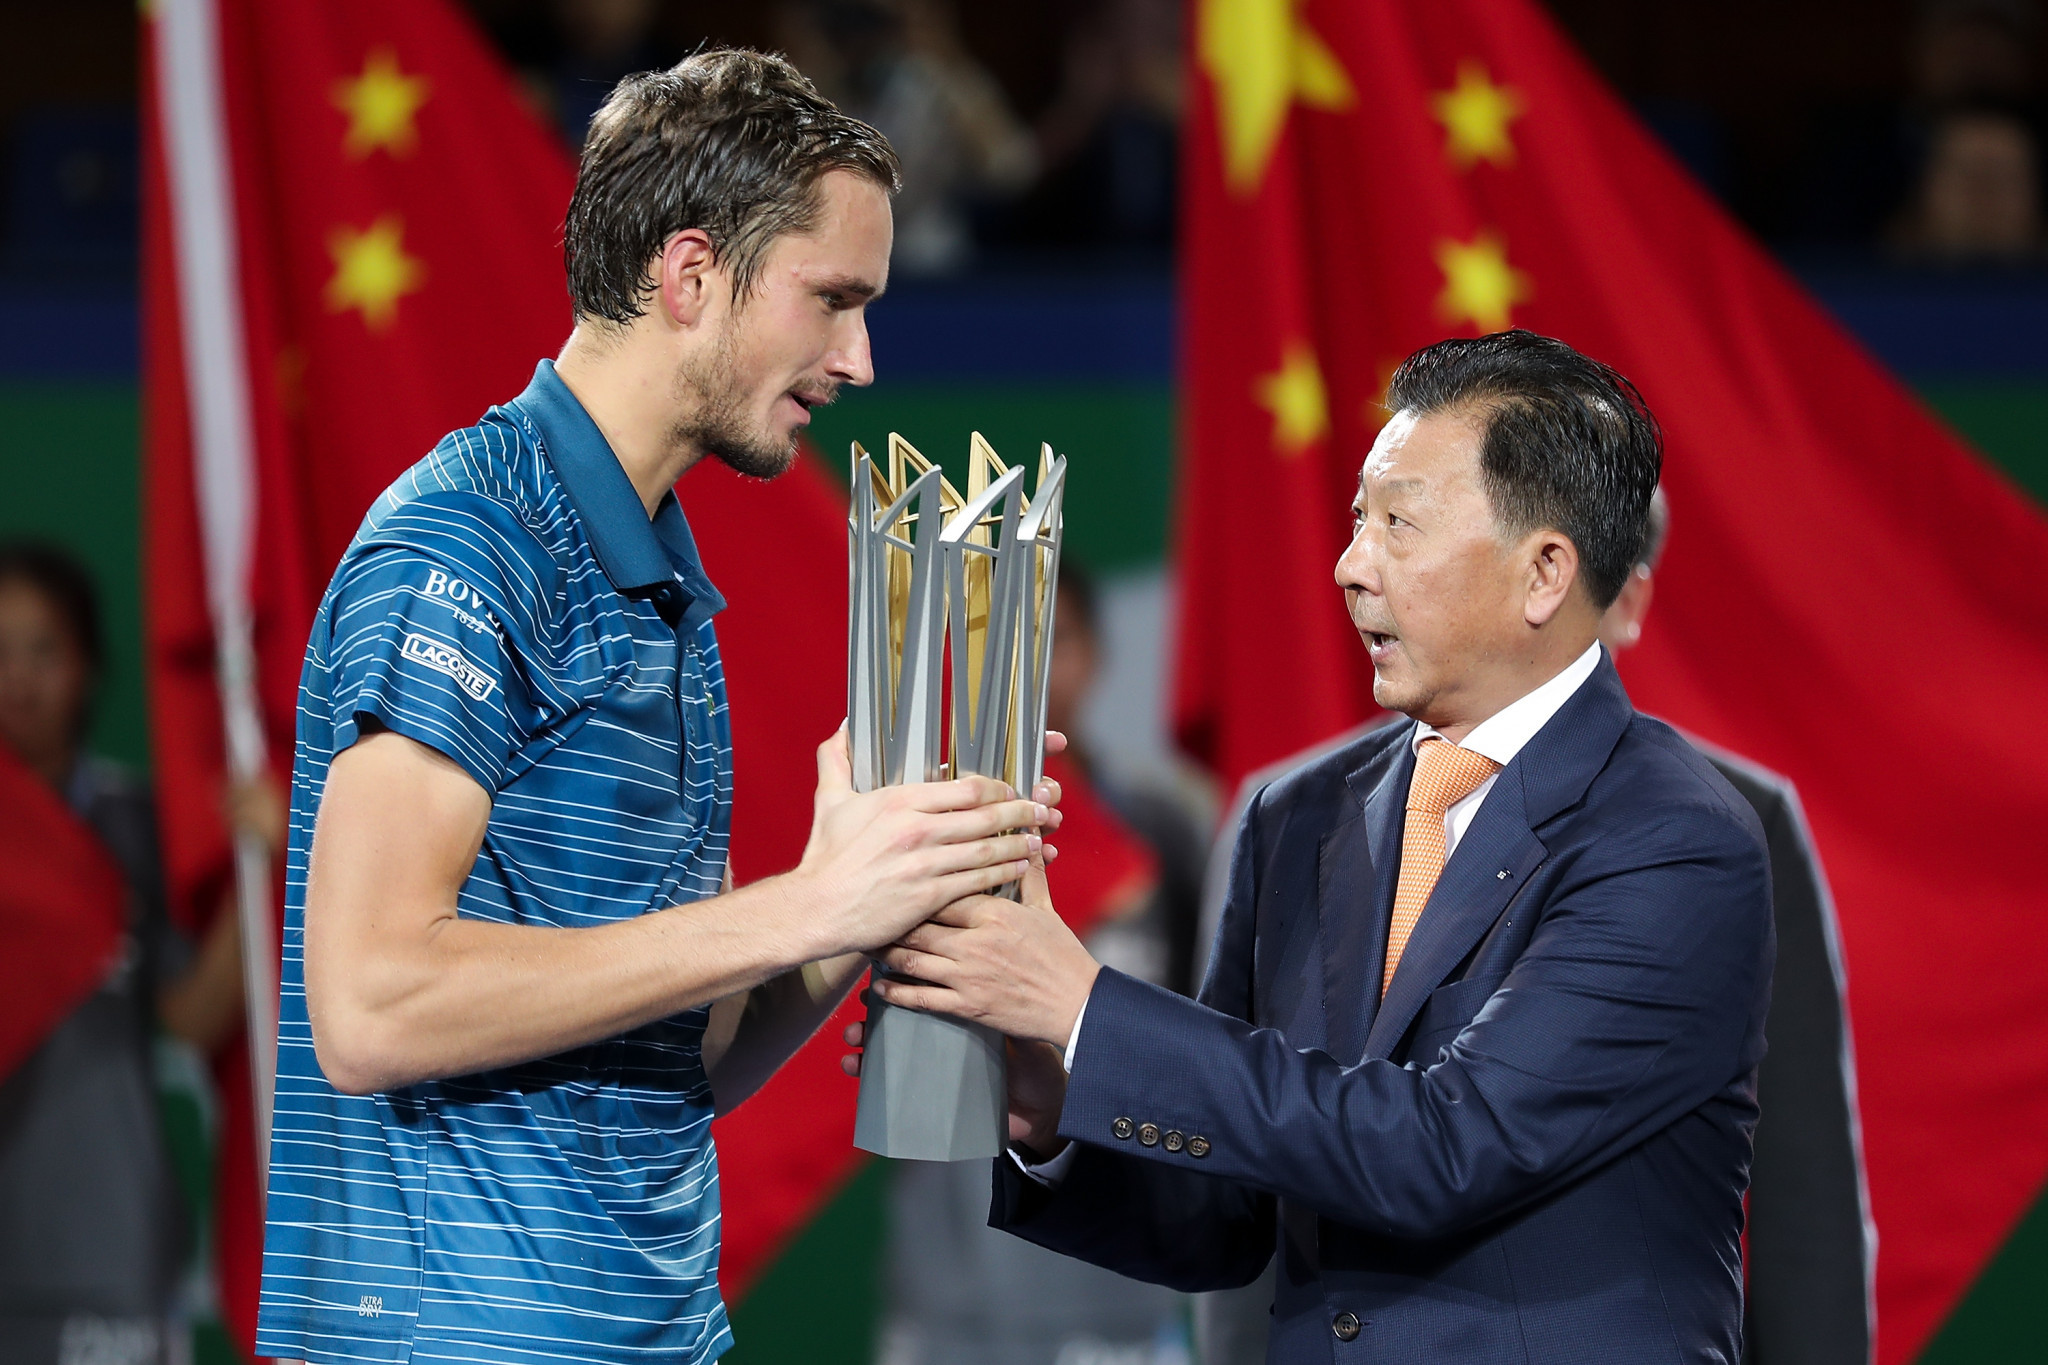 The Shanghai Masters is among the ATP events to be cancelled ©Getty Images